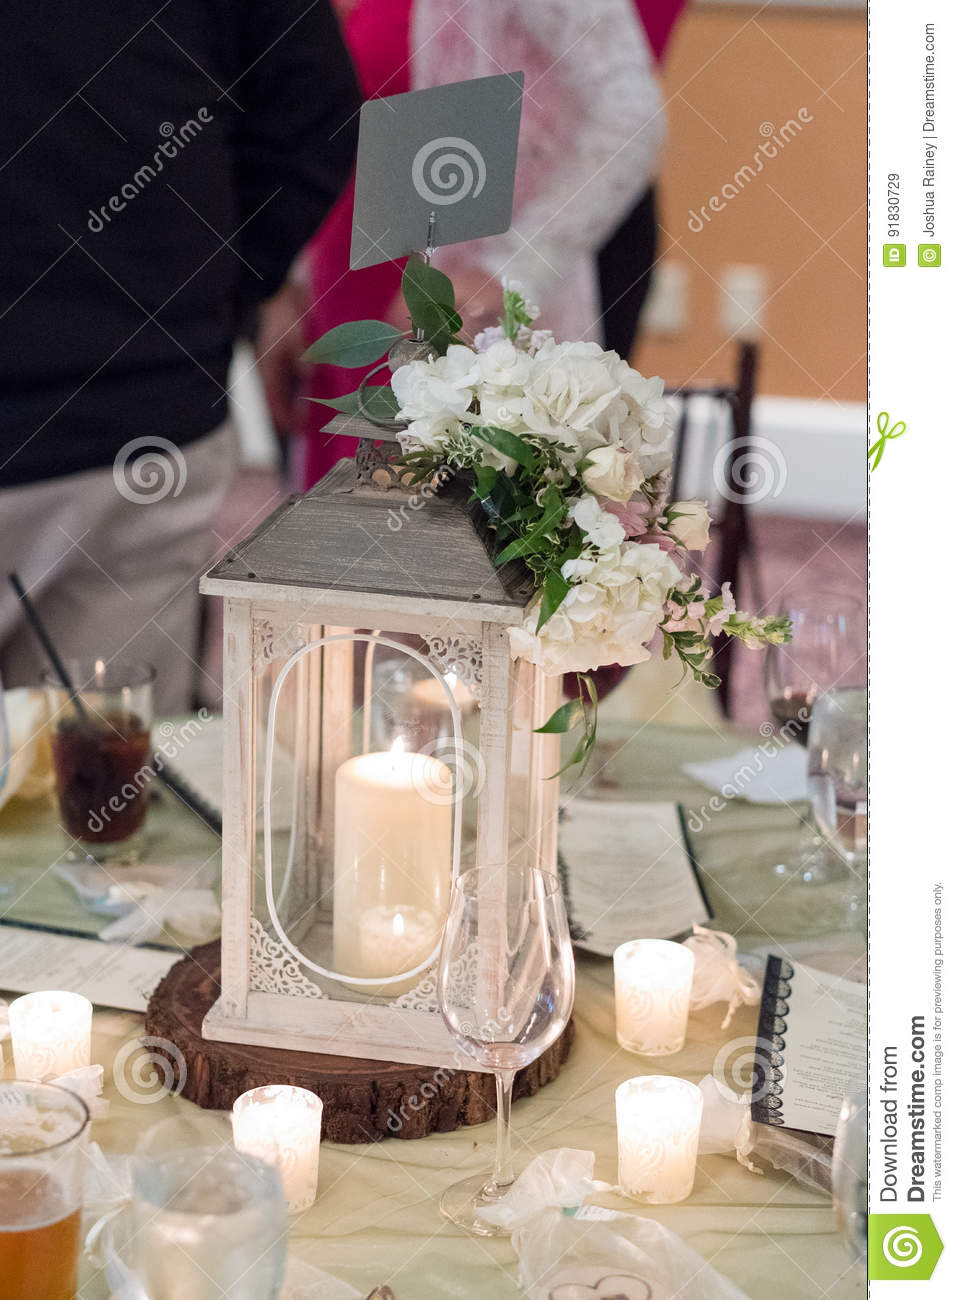 Pleasant Wedding Reception Table Centerpiece Stock Image Image Of Download Free Architecture Designs Grimeyleaguecom